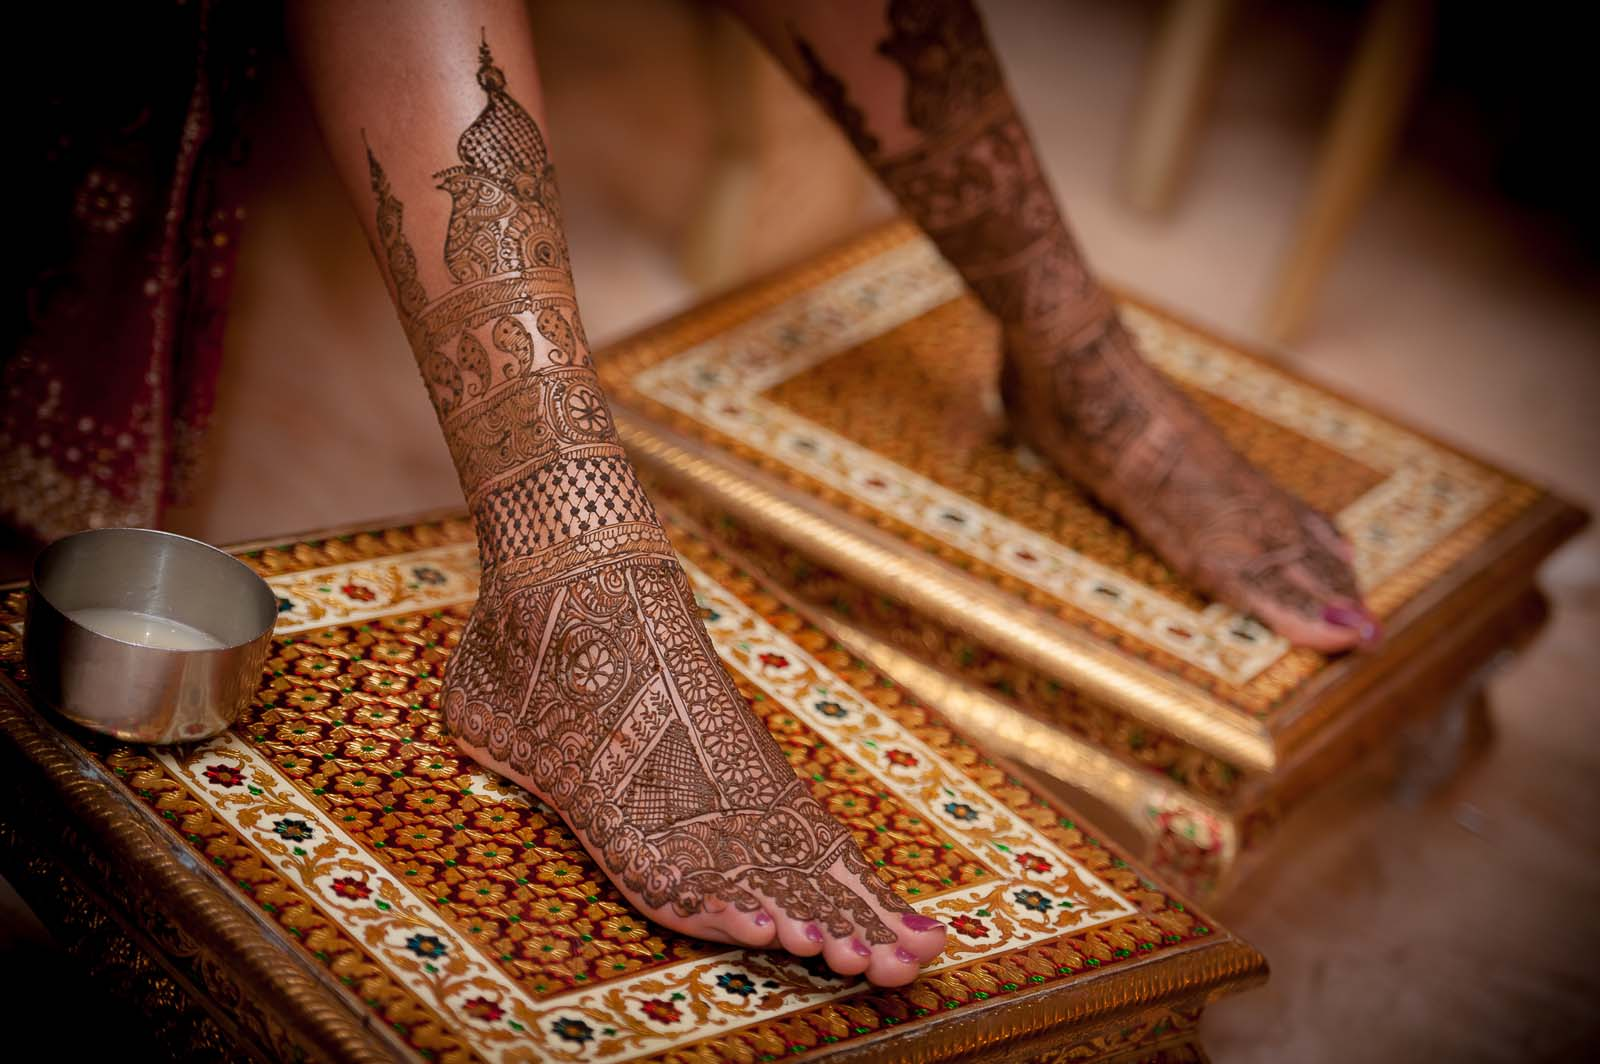 mehendi-wedding-photography-bangalore-feet-photo